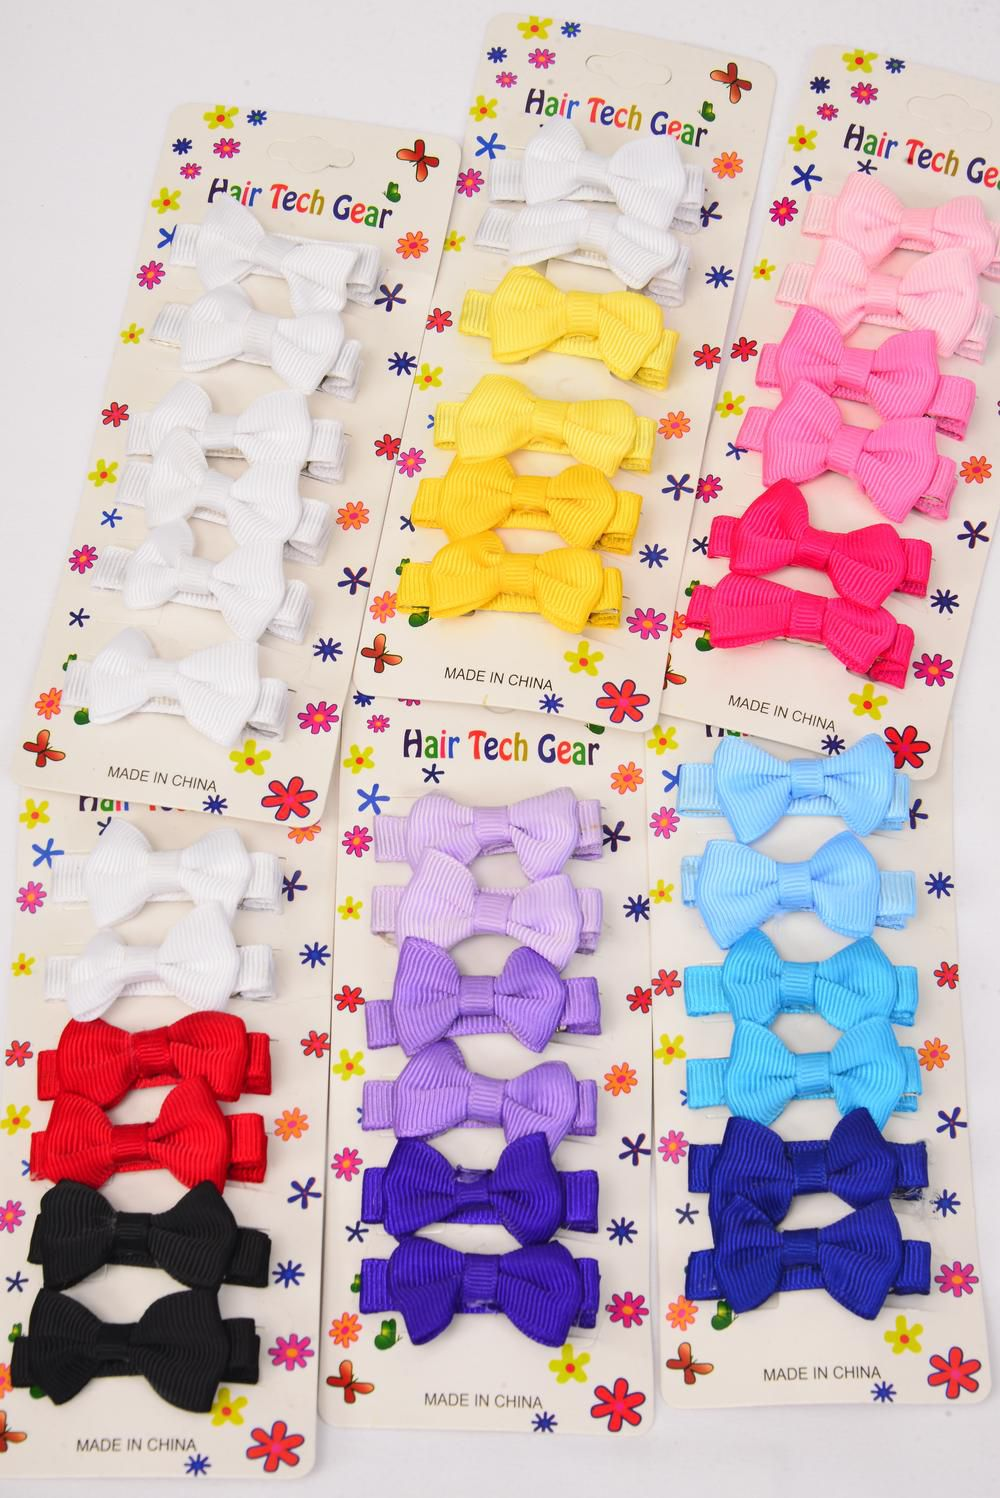 "Hair Bow Grosgrain Bow-tie 6 pecs Multi Alligator Clip/DZ **Multi** Bow-tie Size-2""x 1"",2 of each Color Mix,Display card & OPP bag & UPC Code,6 pecs per Card,12 Card=Dozen -"